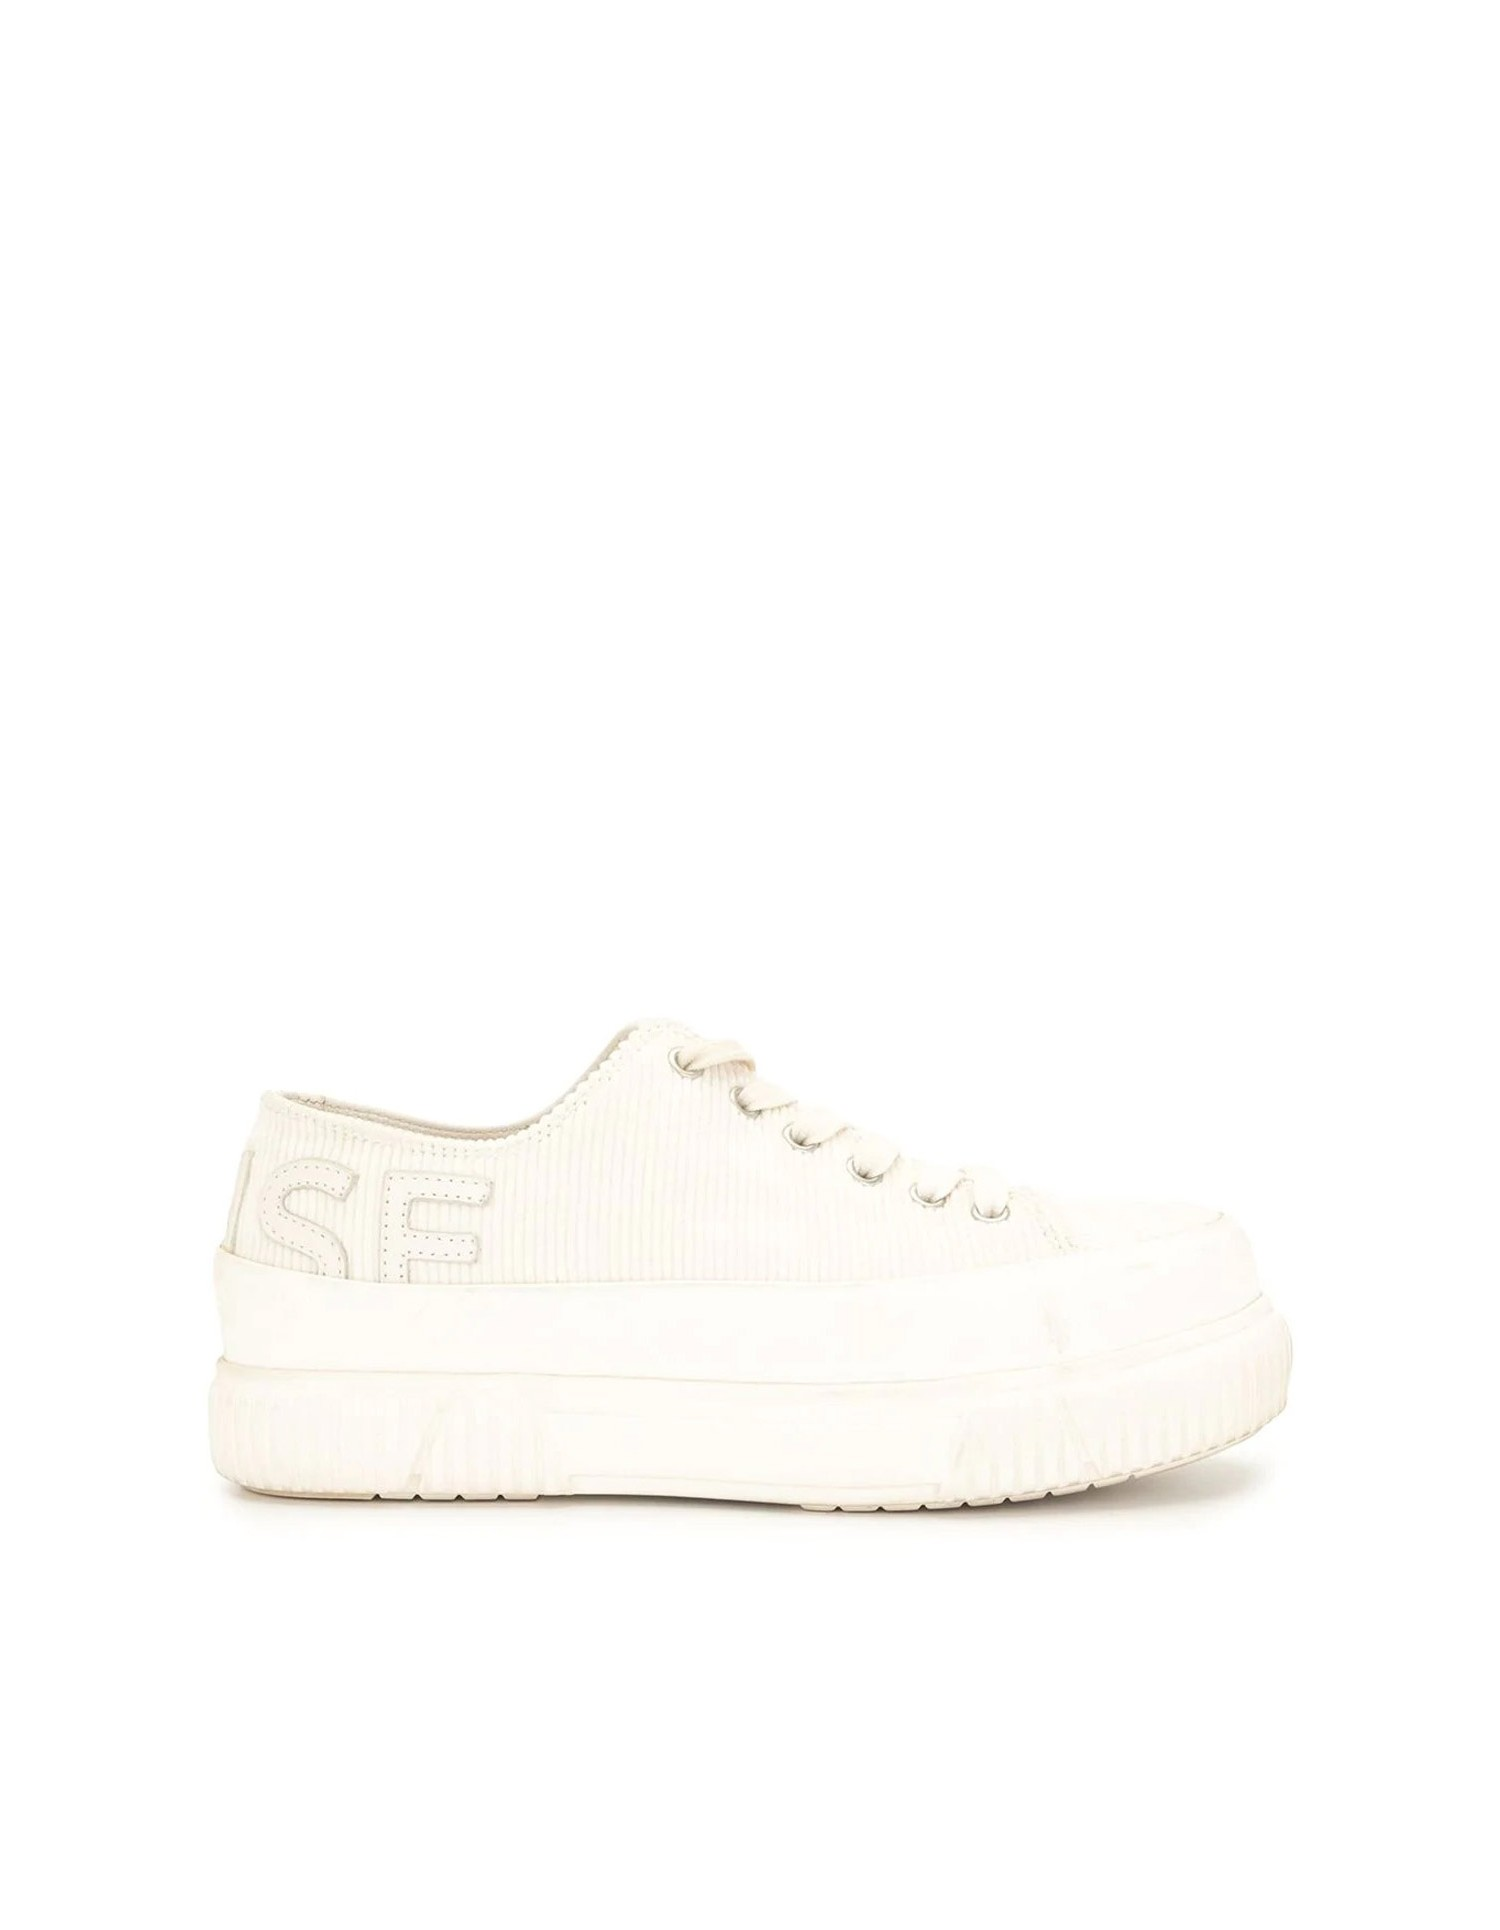 Both X MONSE Classic Platform Shoe in Ivory Side View